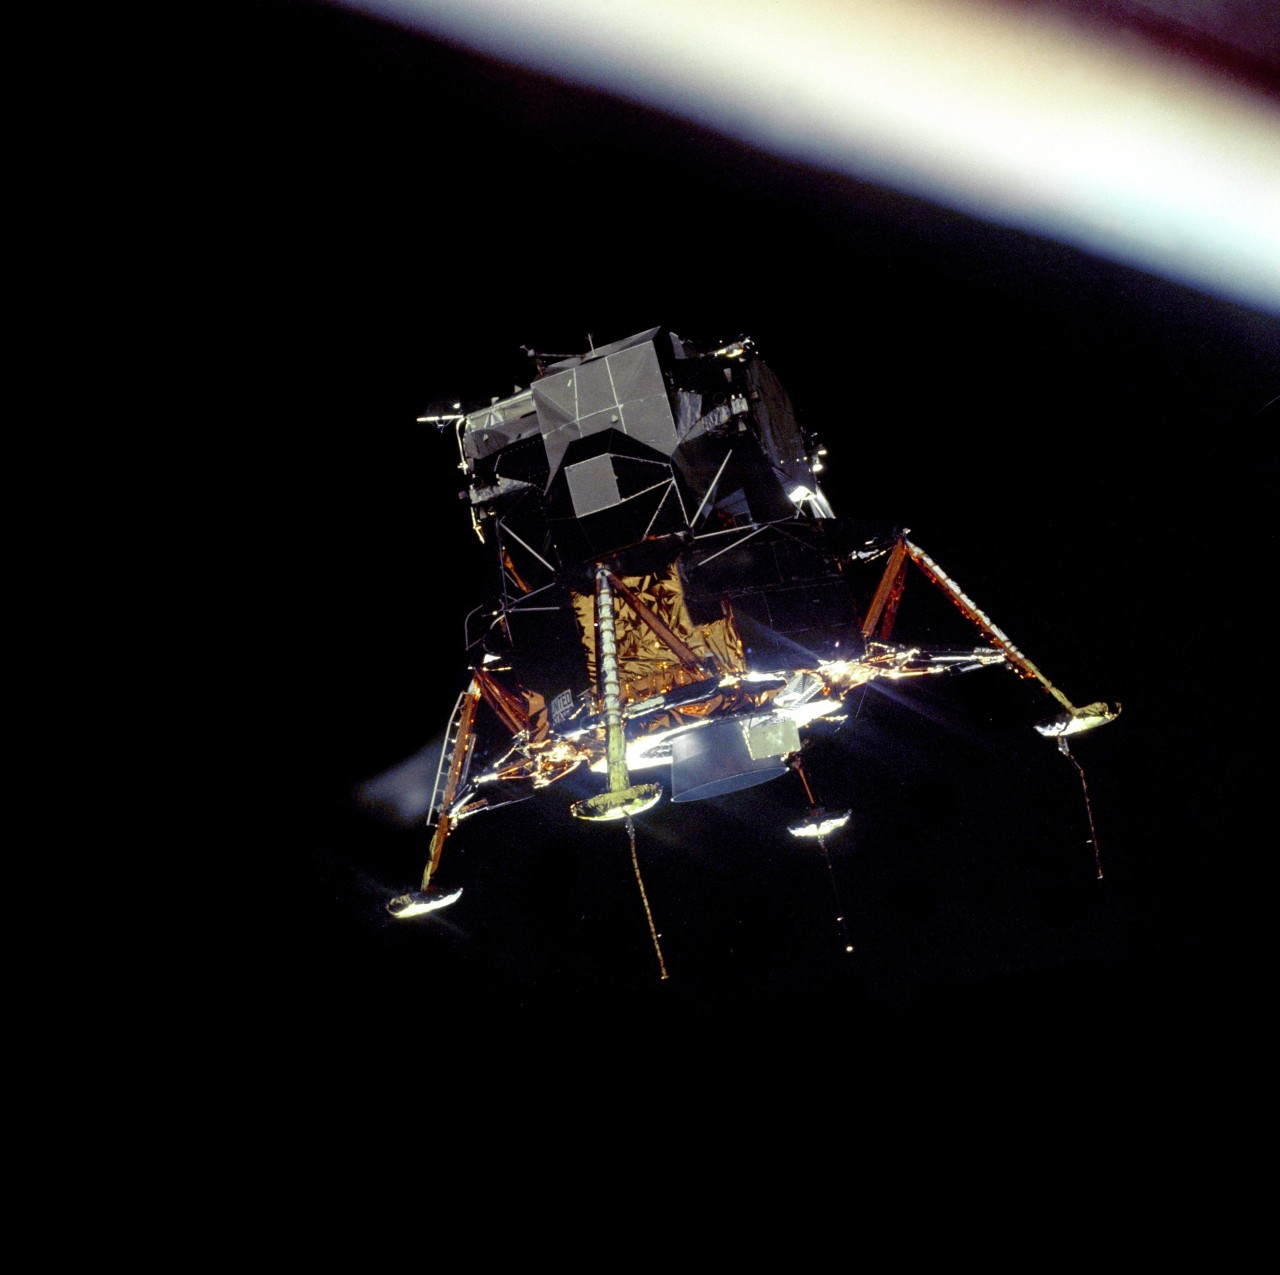 The Apollo 11 Lunar Module Eagle, in a landing configuration was photographed in lunar orbit from the Command and Service Module Columbia. (NASA https://www.nasa.gov/multimedia/imagegallery/image_feature_1161.html)